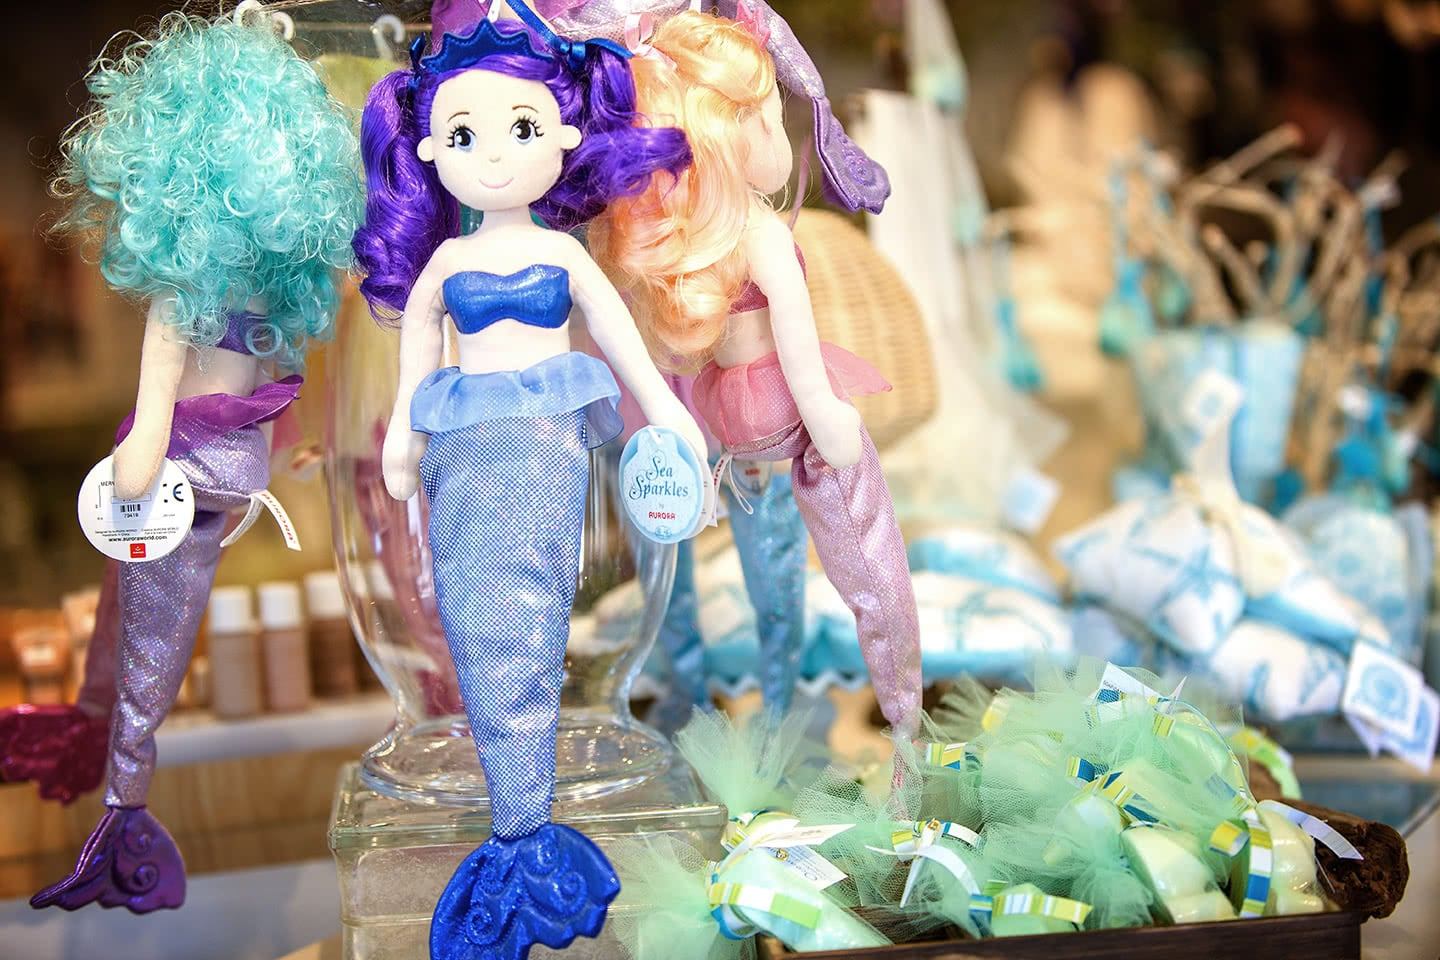 Mermaids and the Feeling of Being a Little Kid in a Candy Store